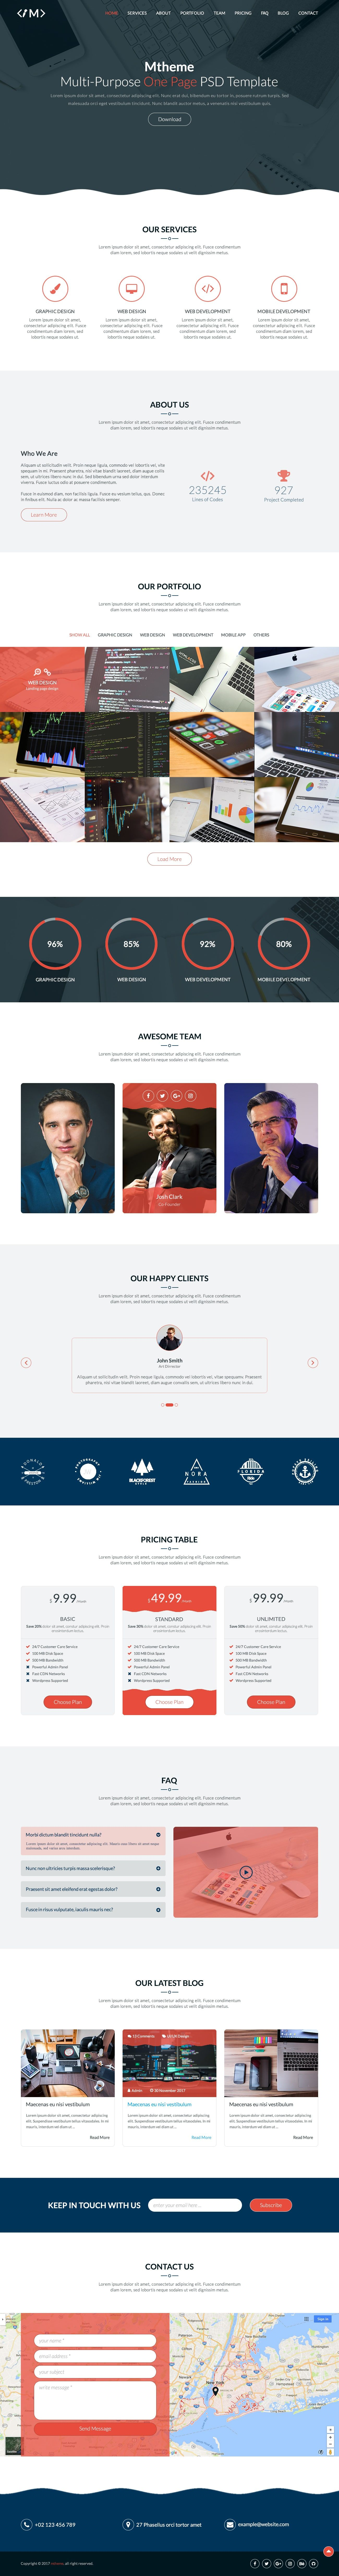 MTheme - Multi-Purpose One Page PSD Template Screenshot 10